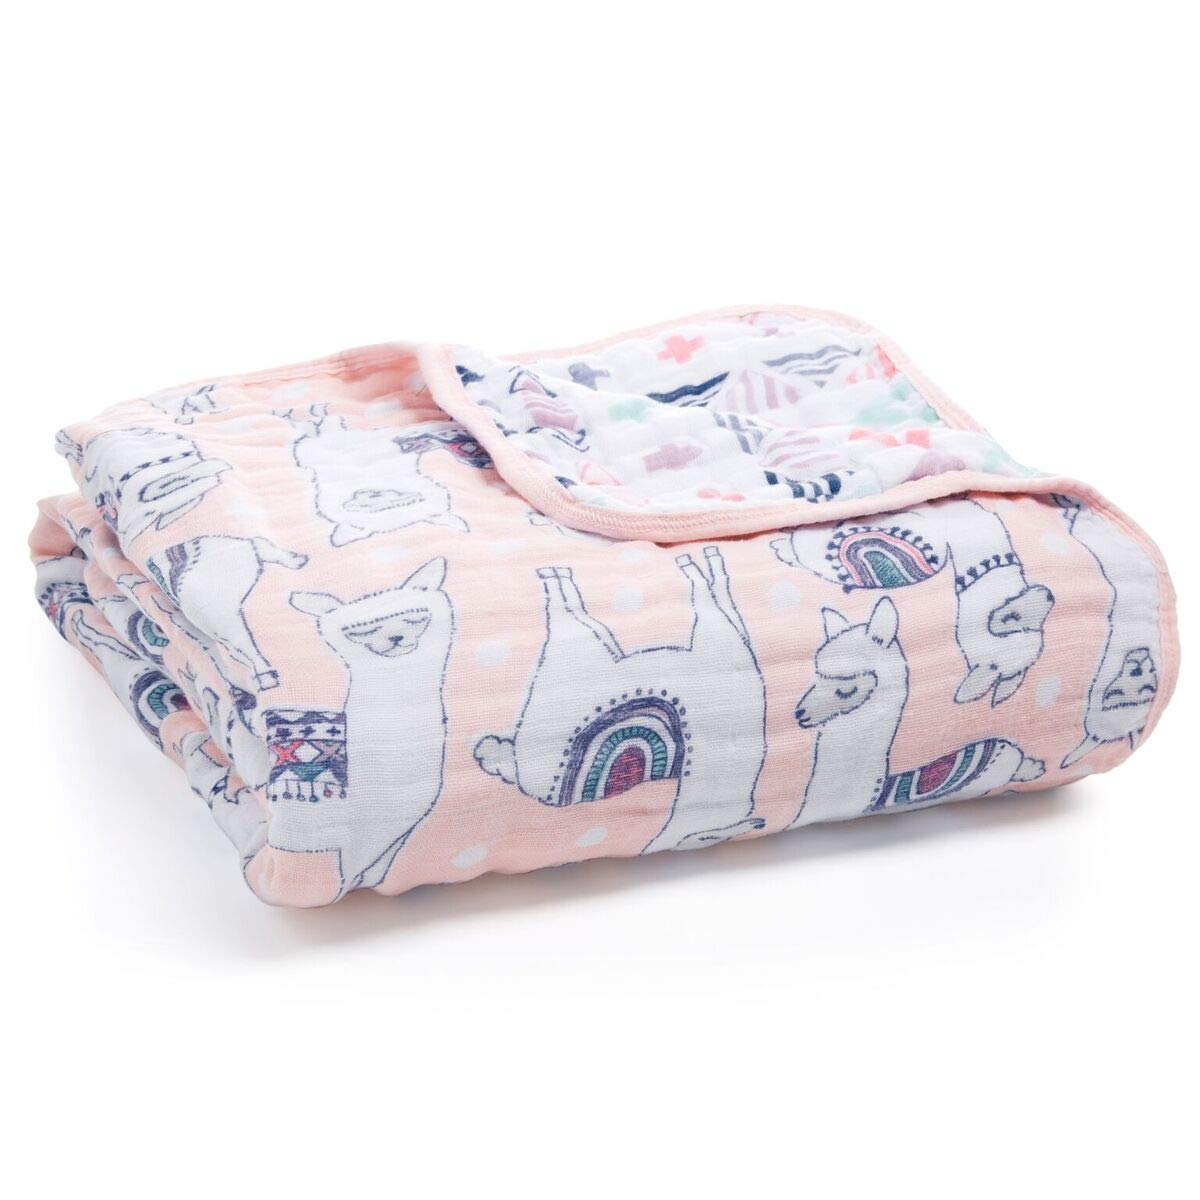 aden + anais Dream Blanket; 100% Cotton Muslin; 4 Layer Lightweight and Breathable; Large 47 X 47 inch; Trail Blooms - Pretty Llama